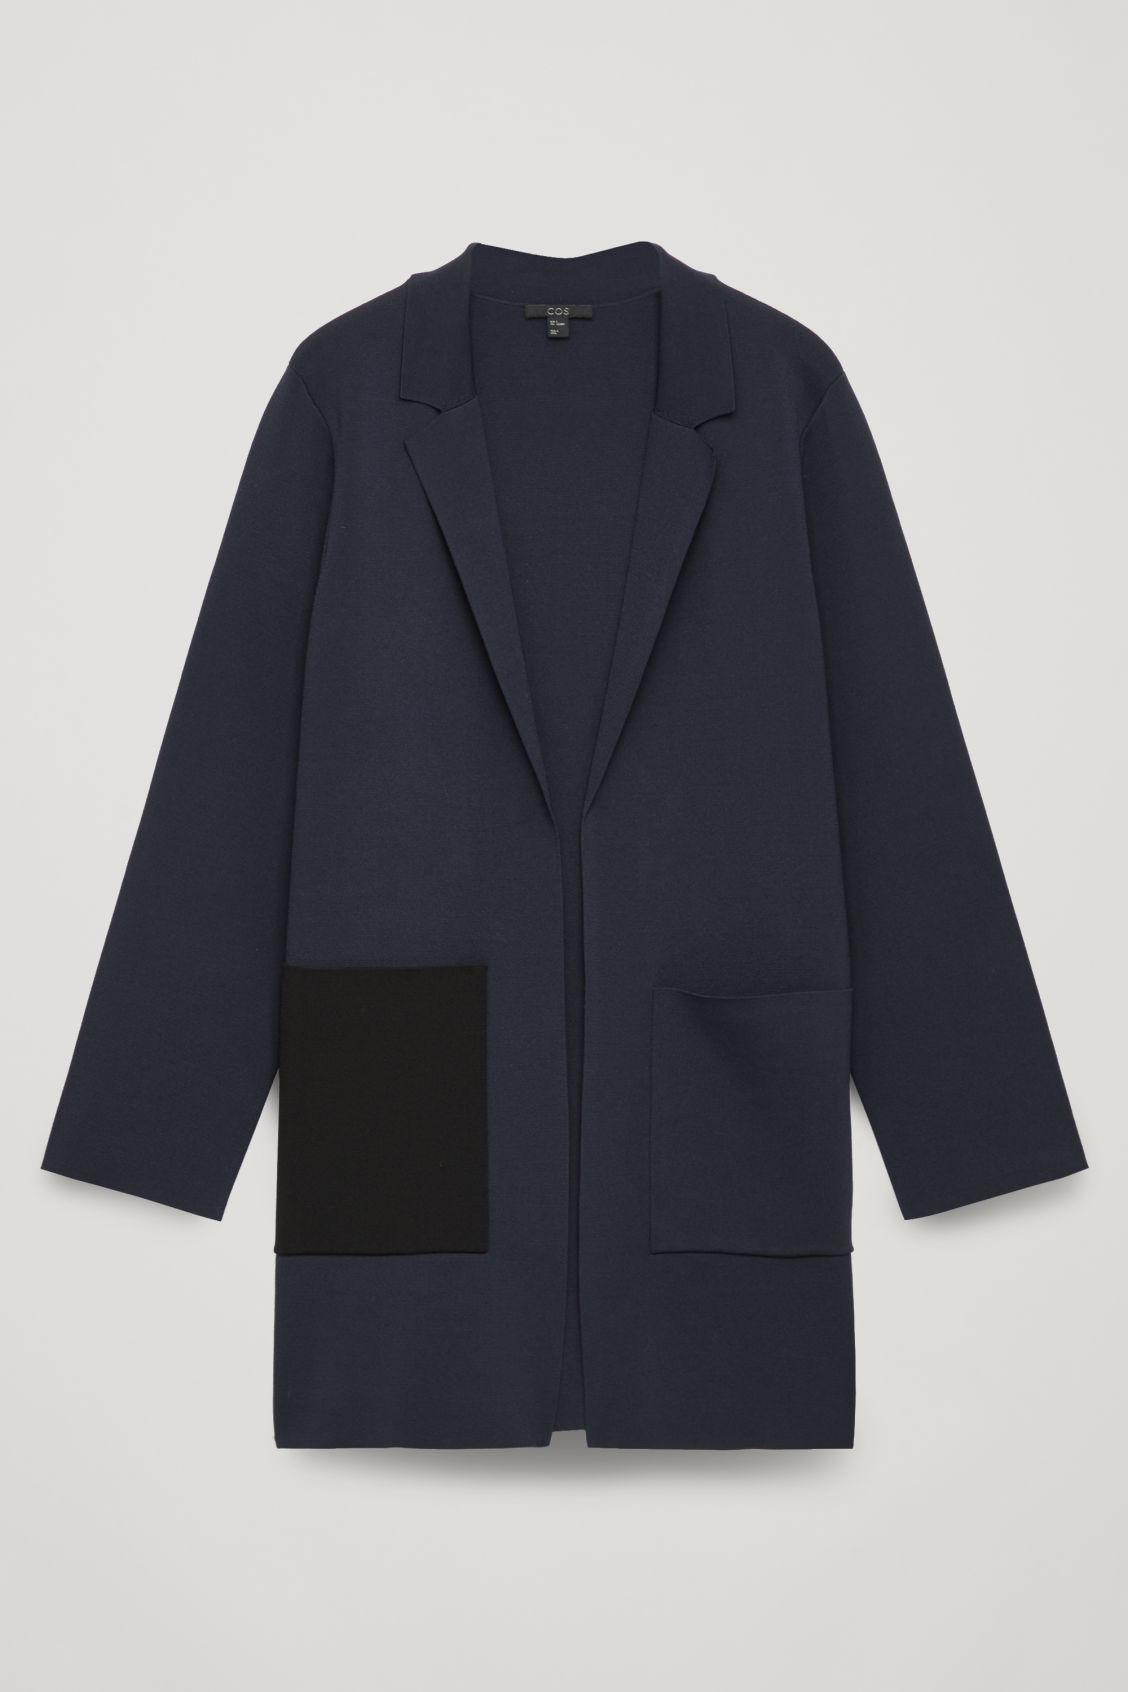 Long Structured-Knit Jacket in Blue from COS